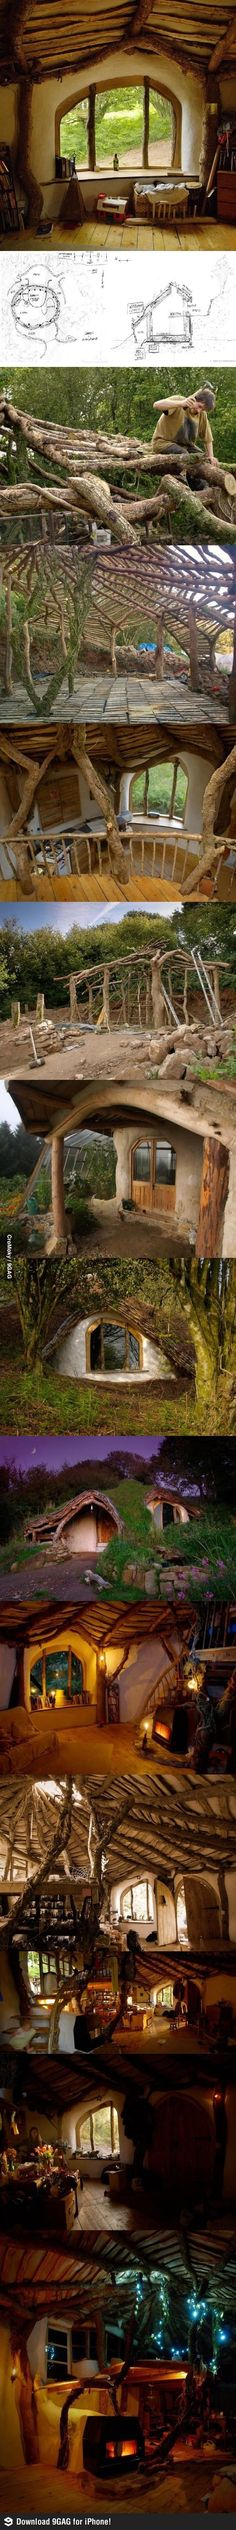 How to build a hobbit hole